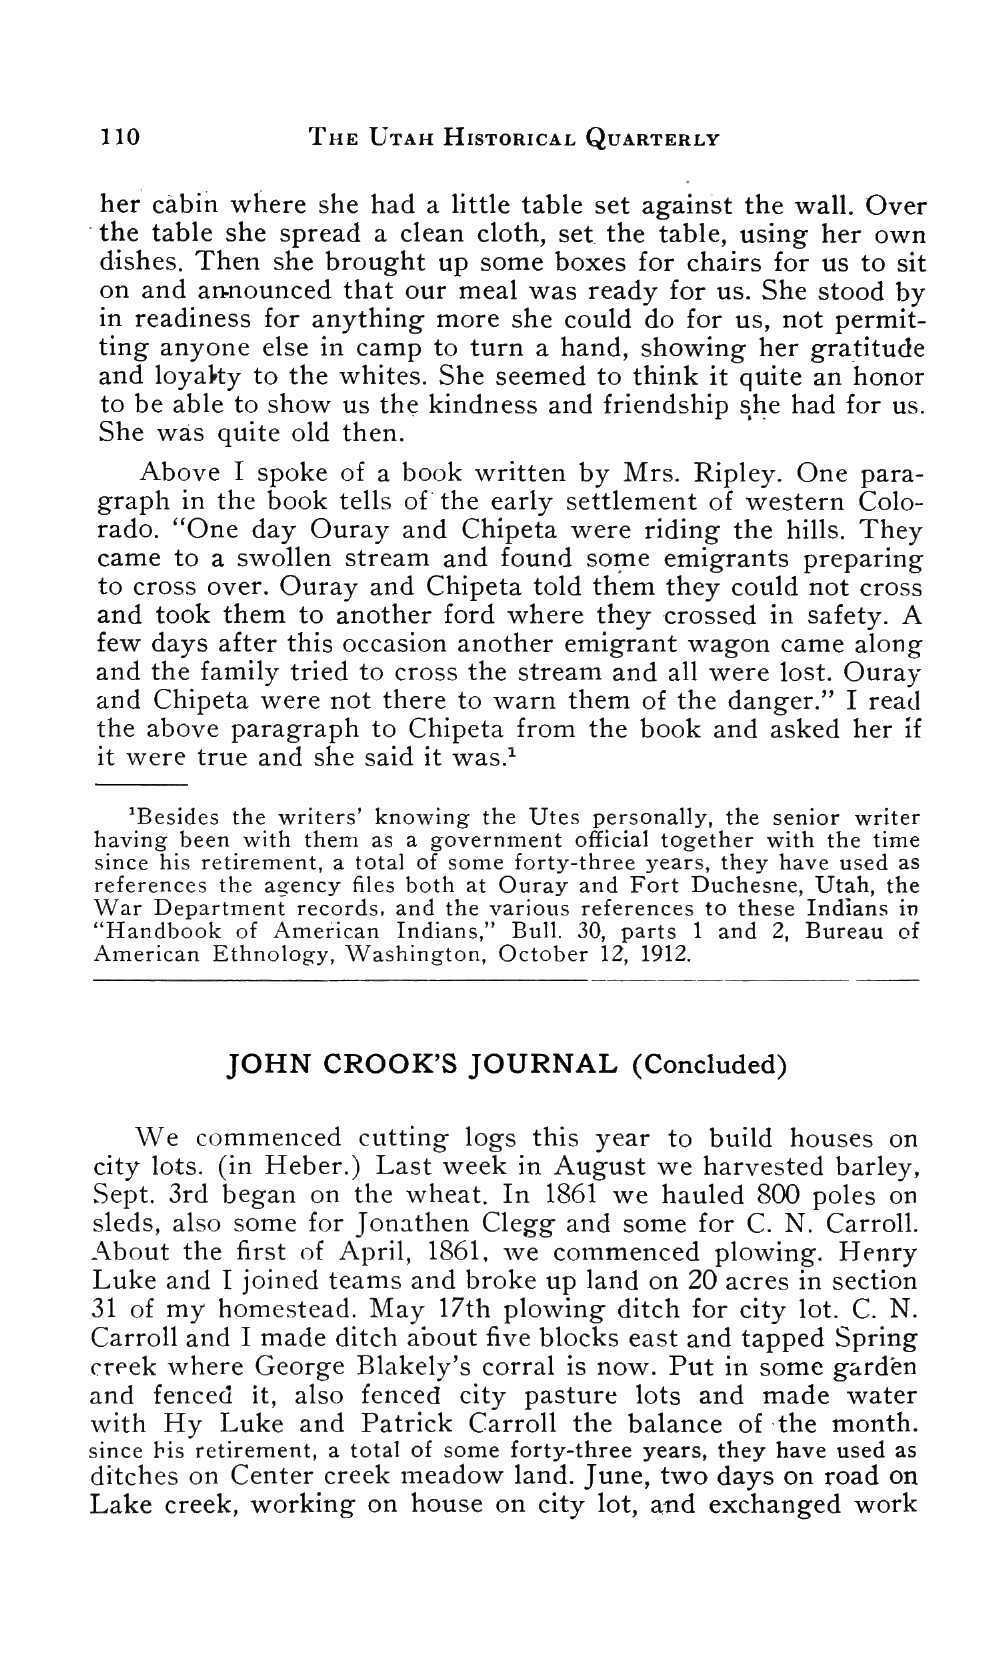 Page 110 of John Crook's Journal (concluded)